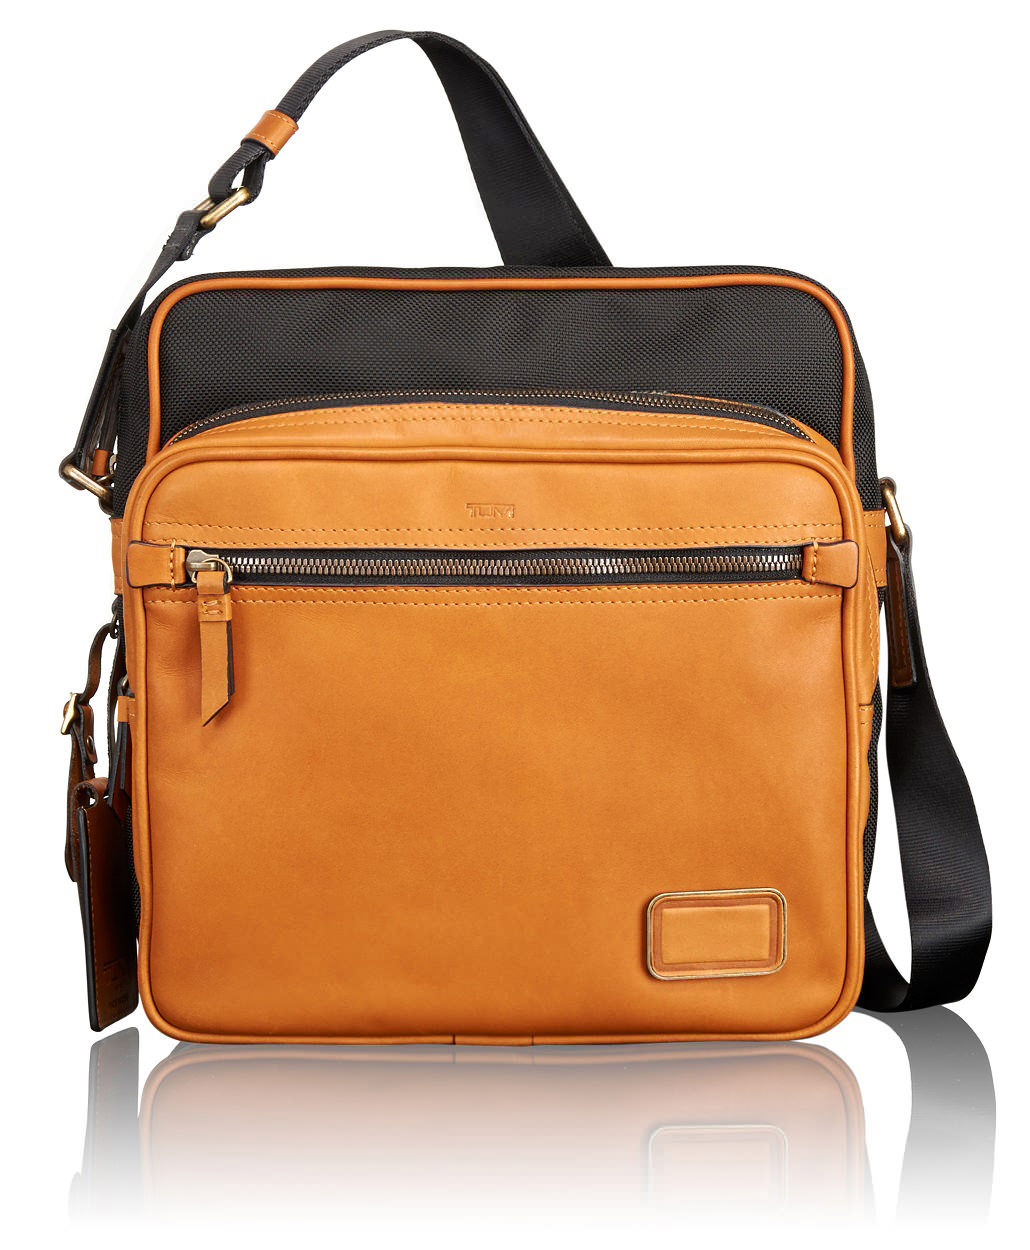 NS Crossbody